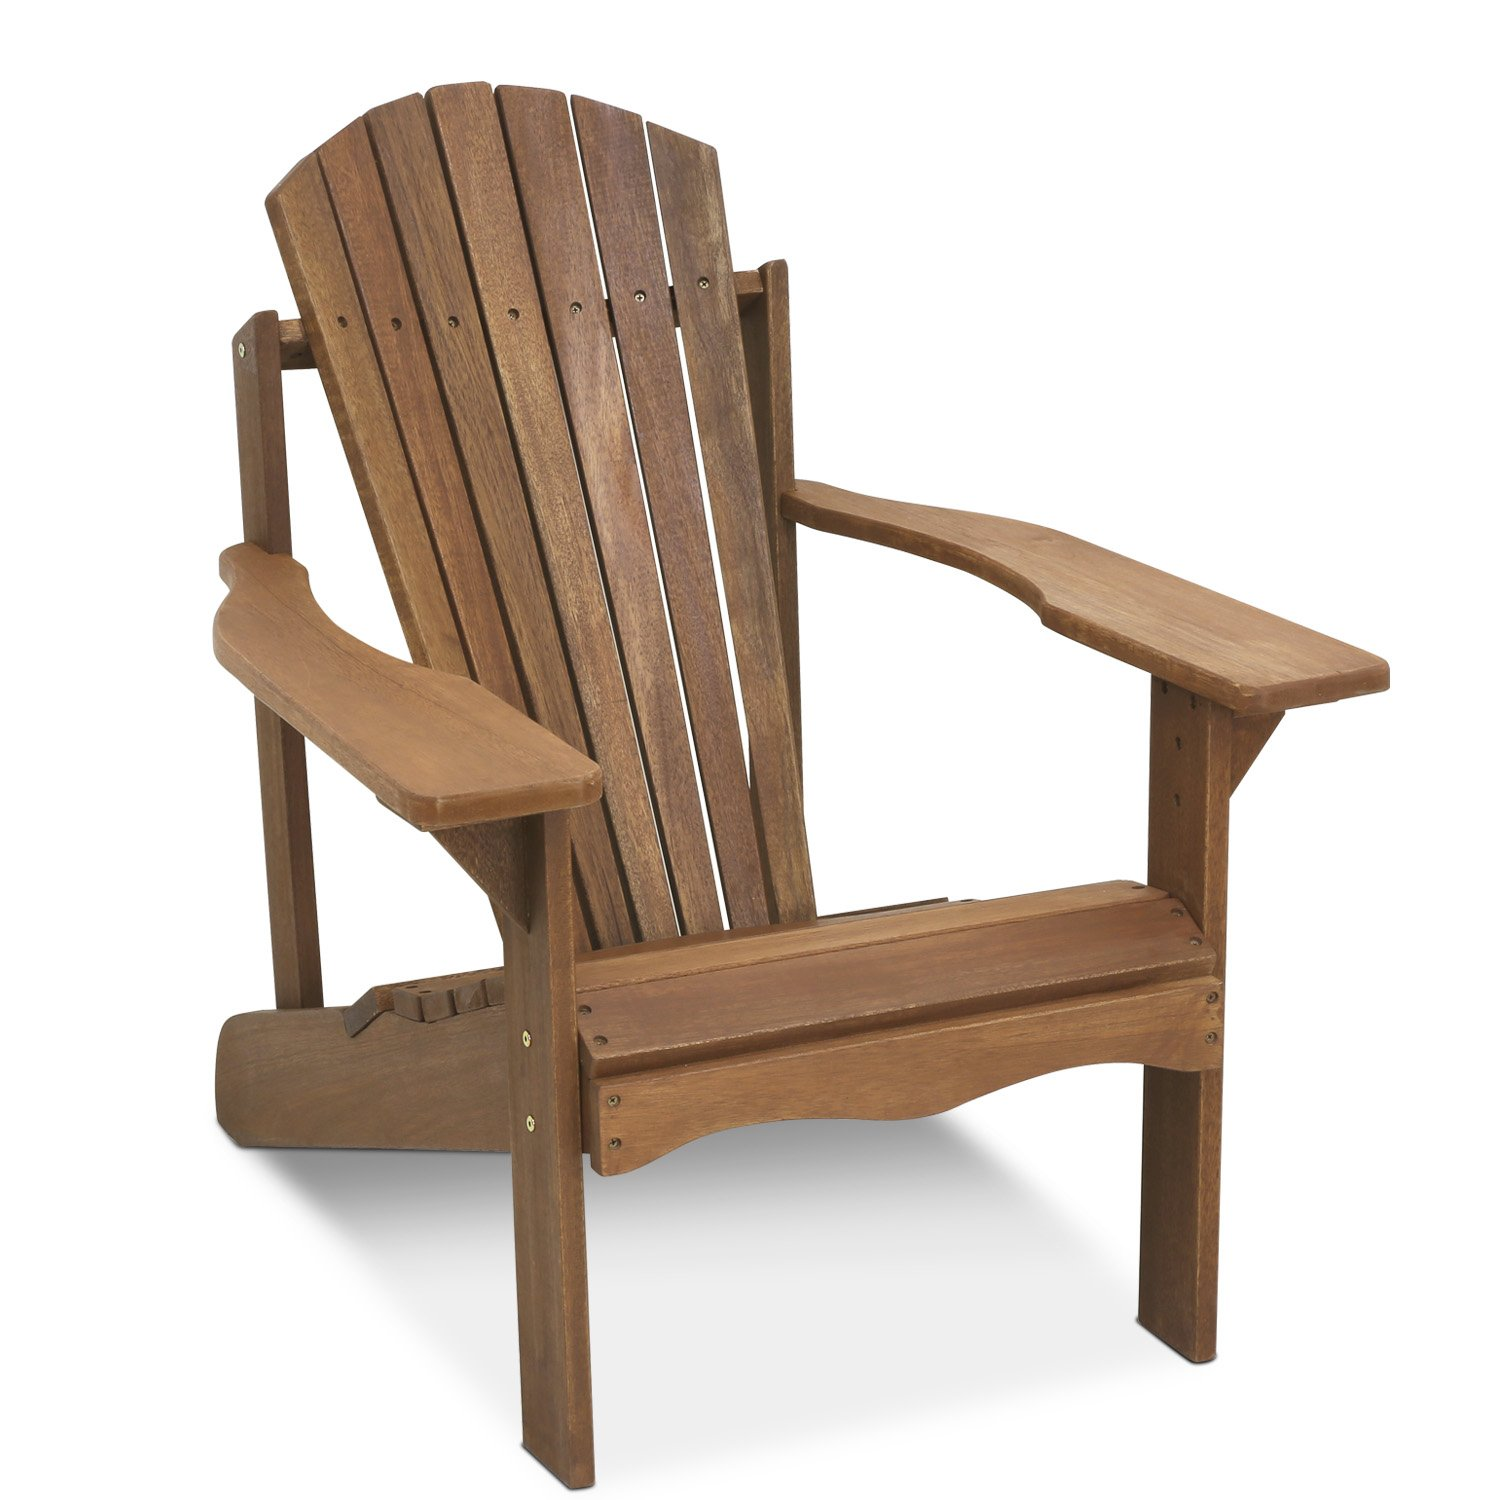 Amazon Furinno Tioman Hardwood Adirondack Patio Chair in